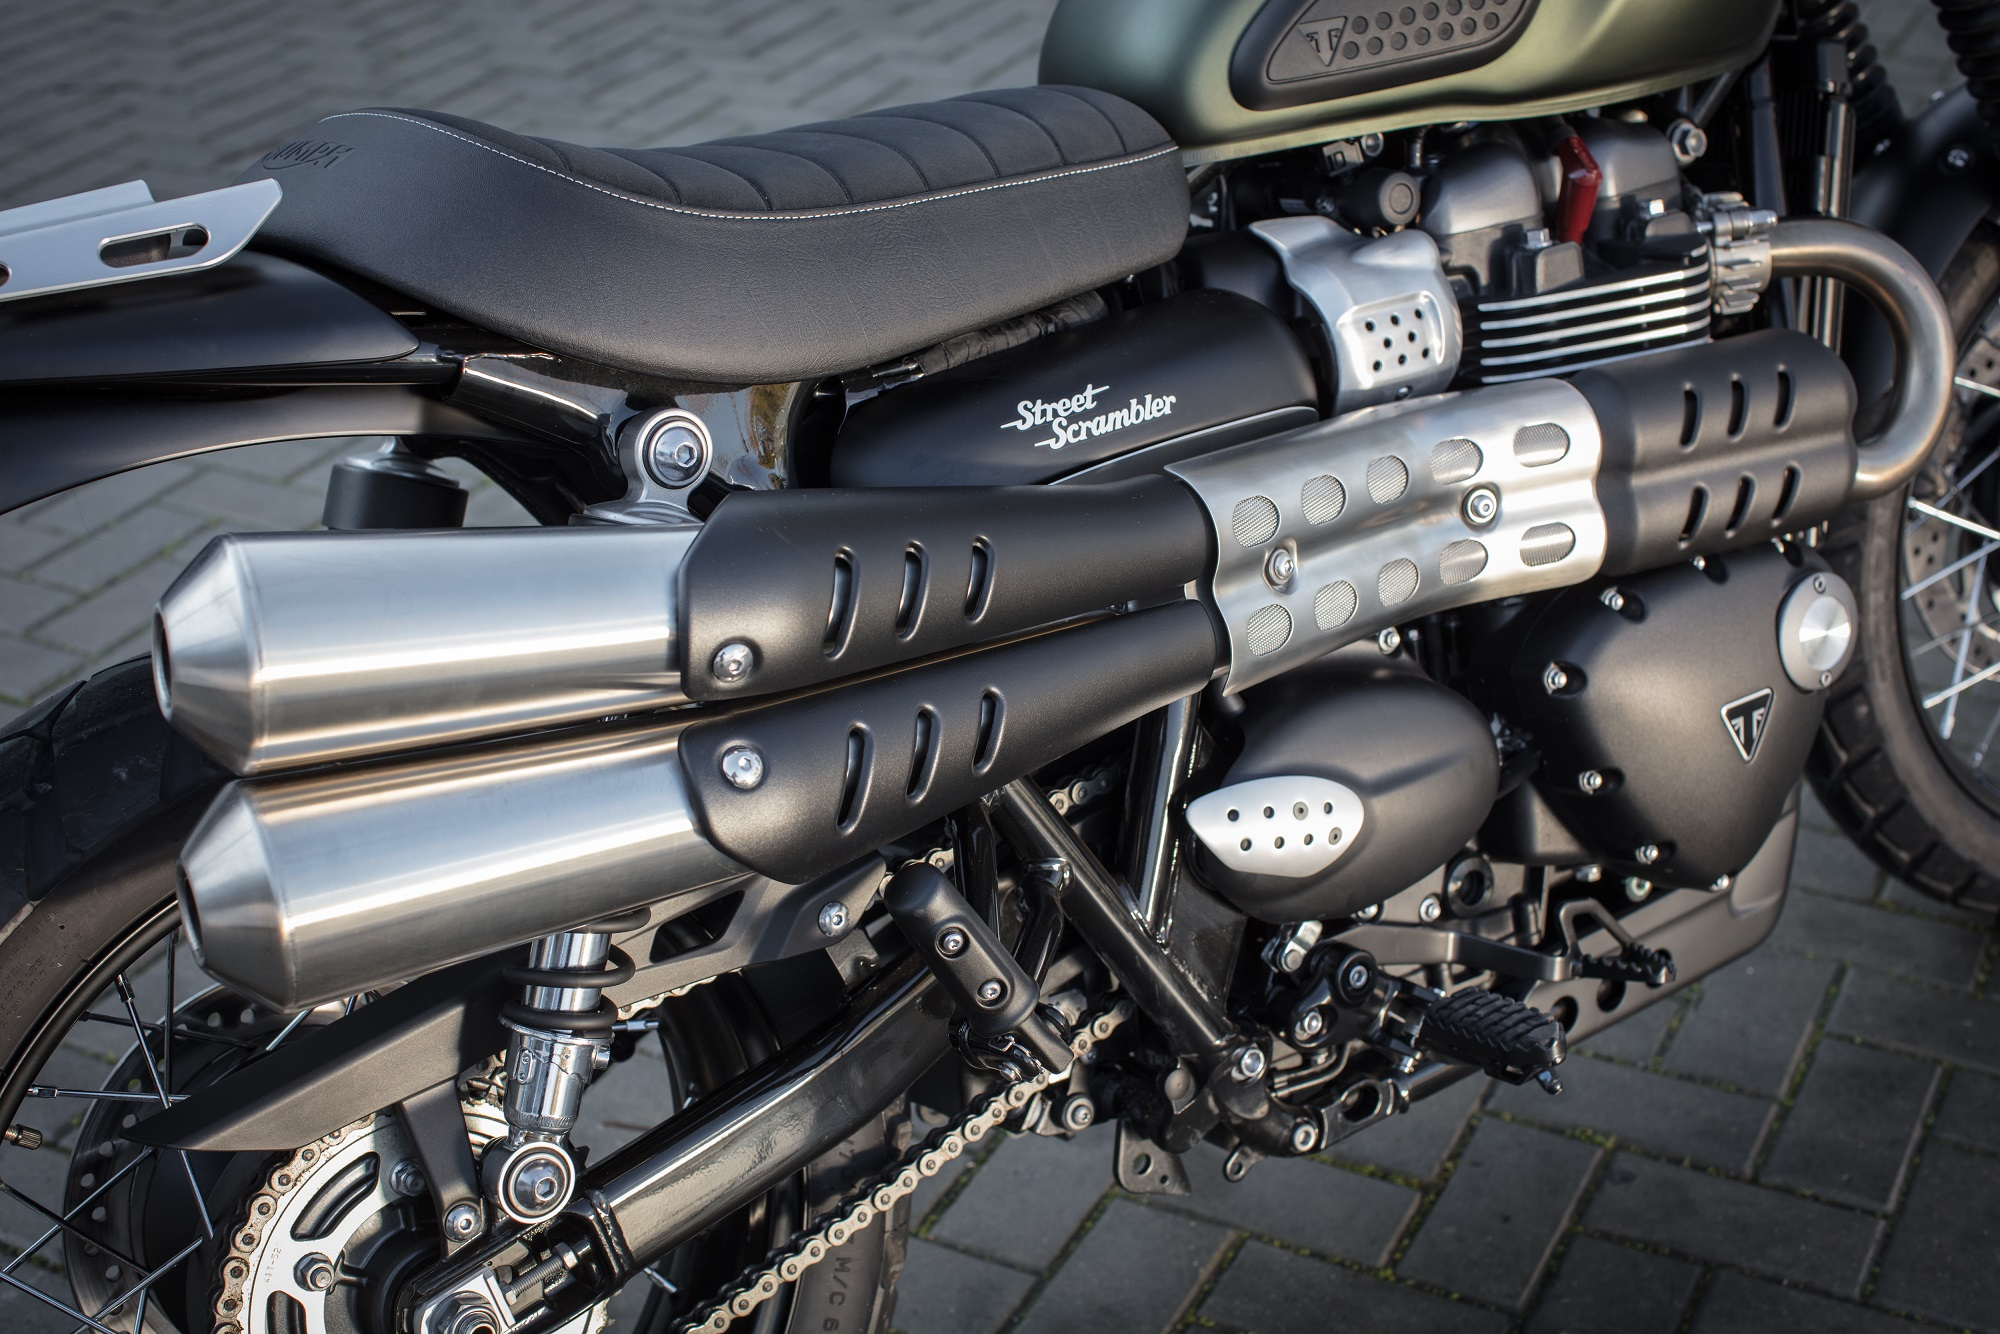 Triumph Street Scrambler engine and exhausts